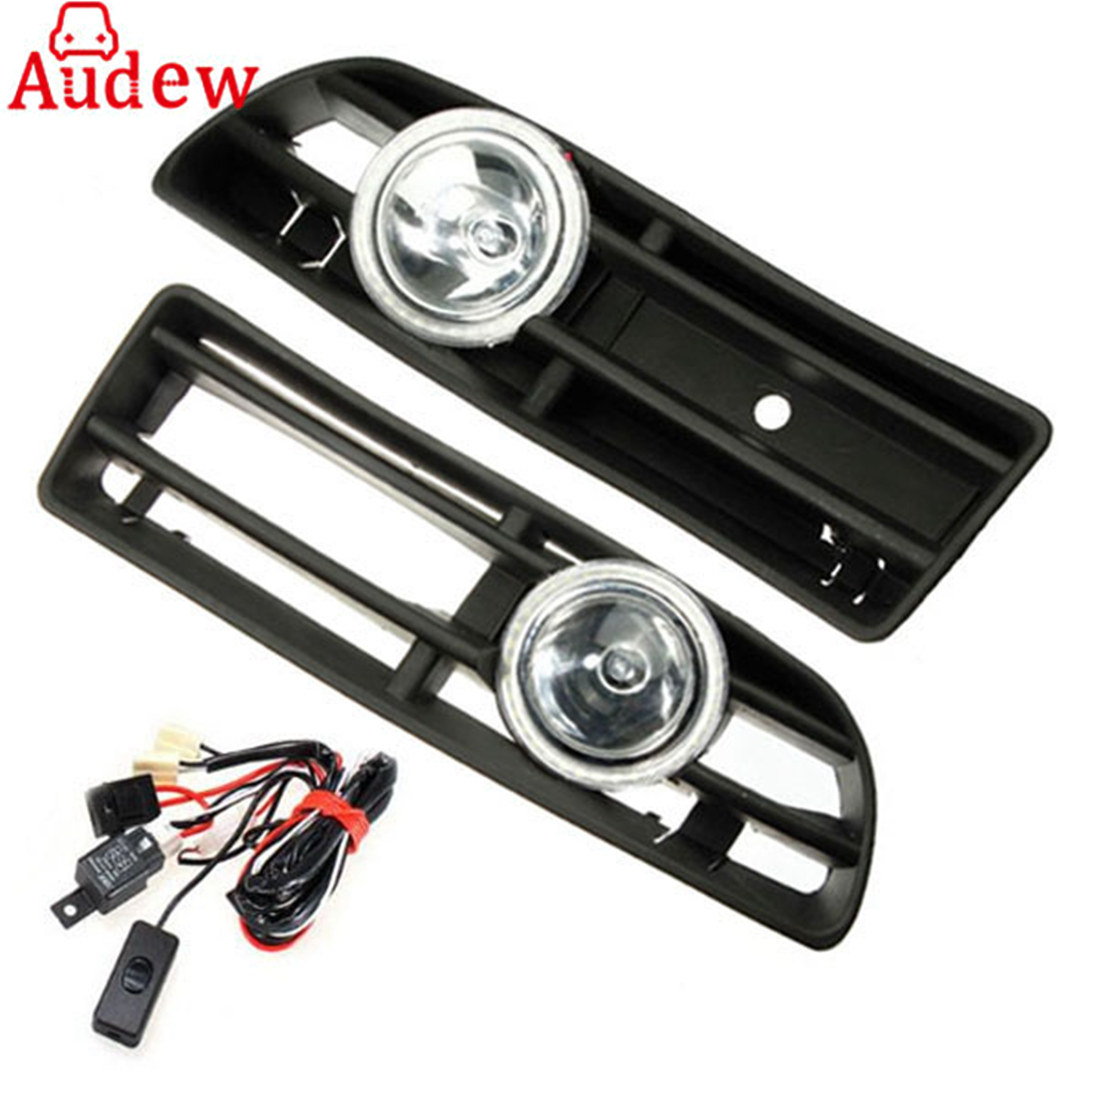 2Pcs Car Fog Light Lamp Angel eyes Auto Accessories With Racing Grille With Wire for VW Bora 1998-2002 front bumper fog lamp grille led convex lens fog light angel eyes for vw polo 2001 2002 2003 2004 2005 drl car accessory p364